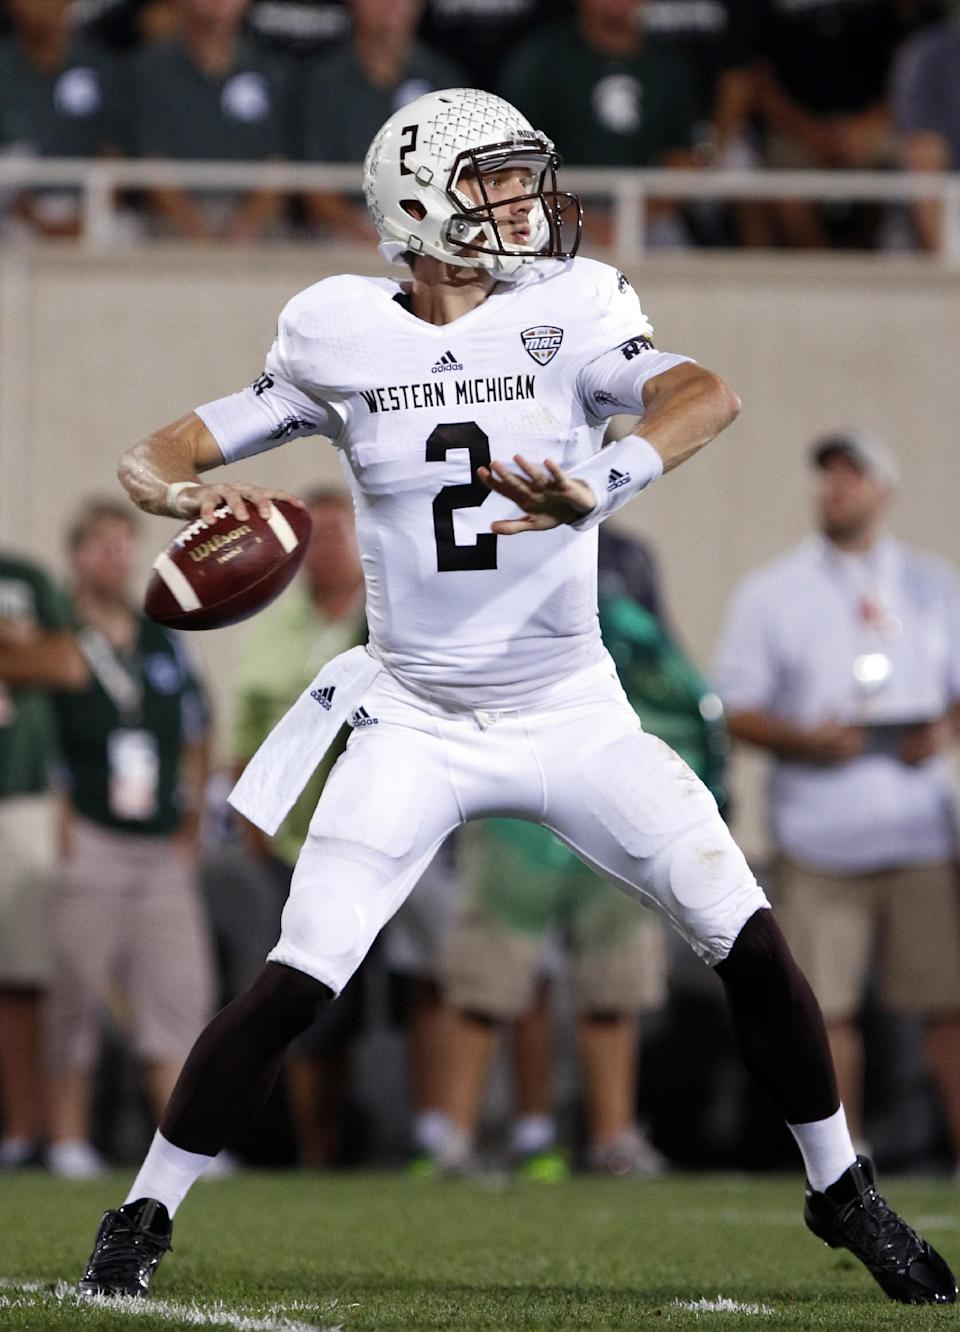 Michigan State beats Western Michigan 26-13